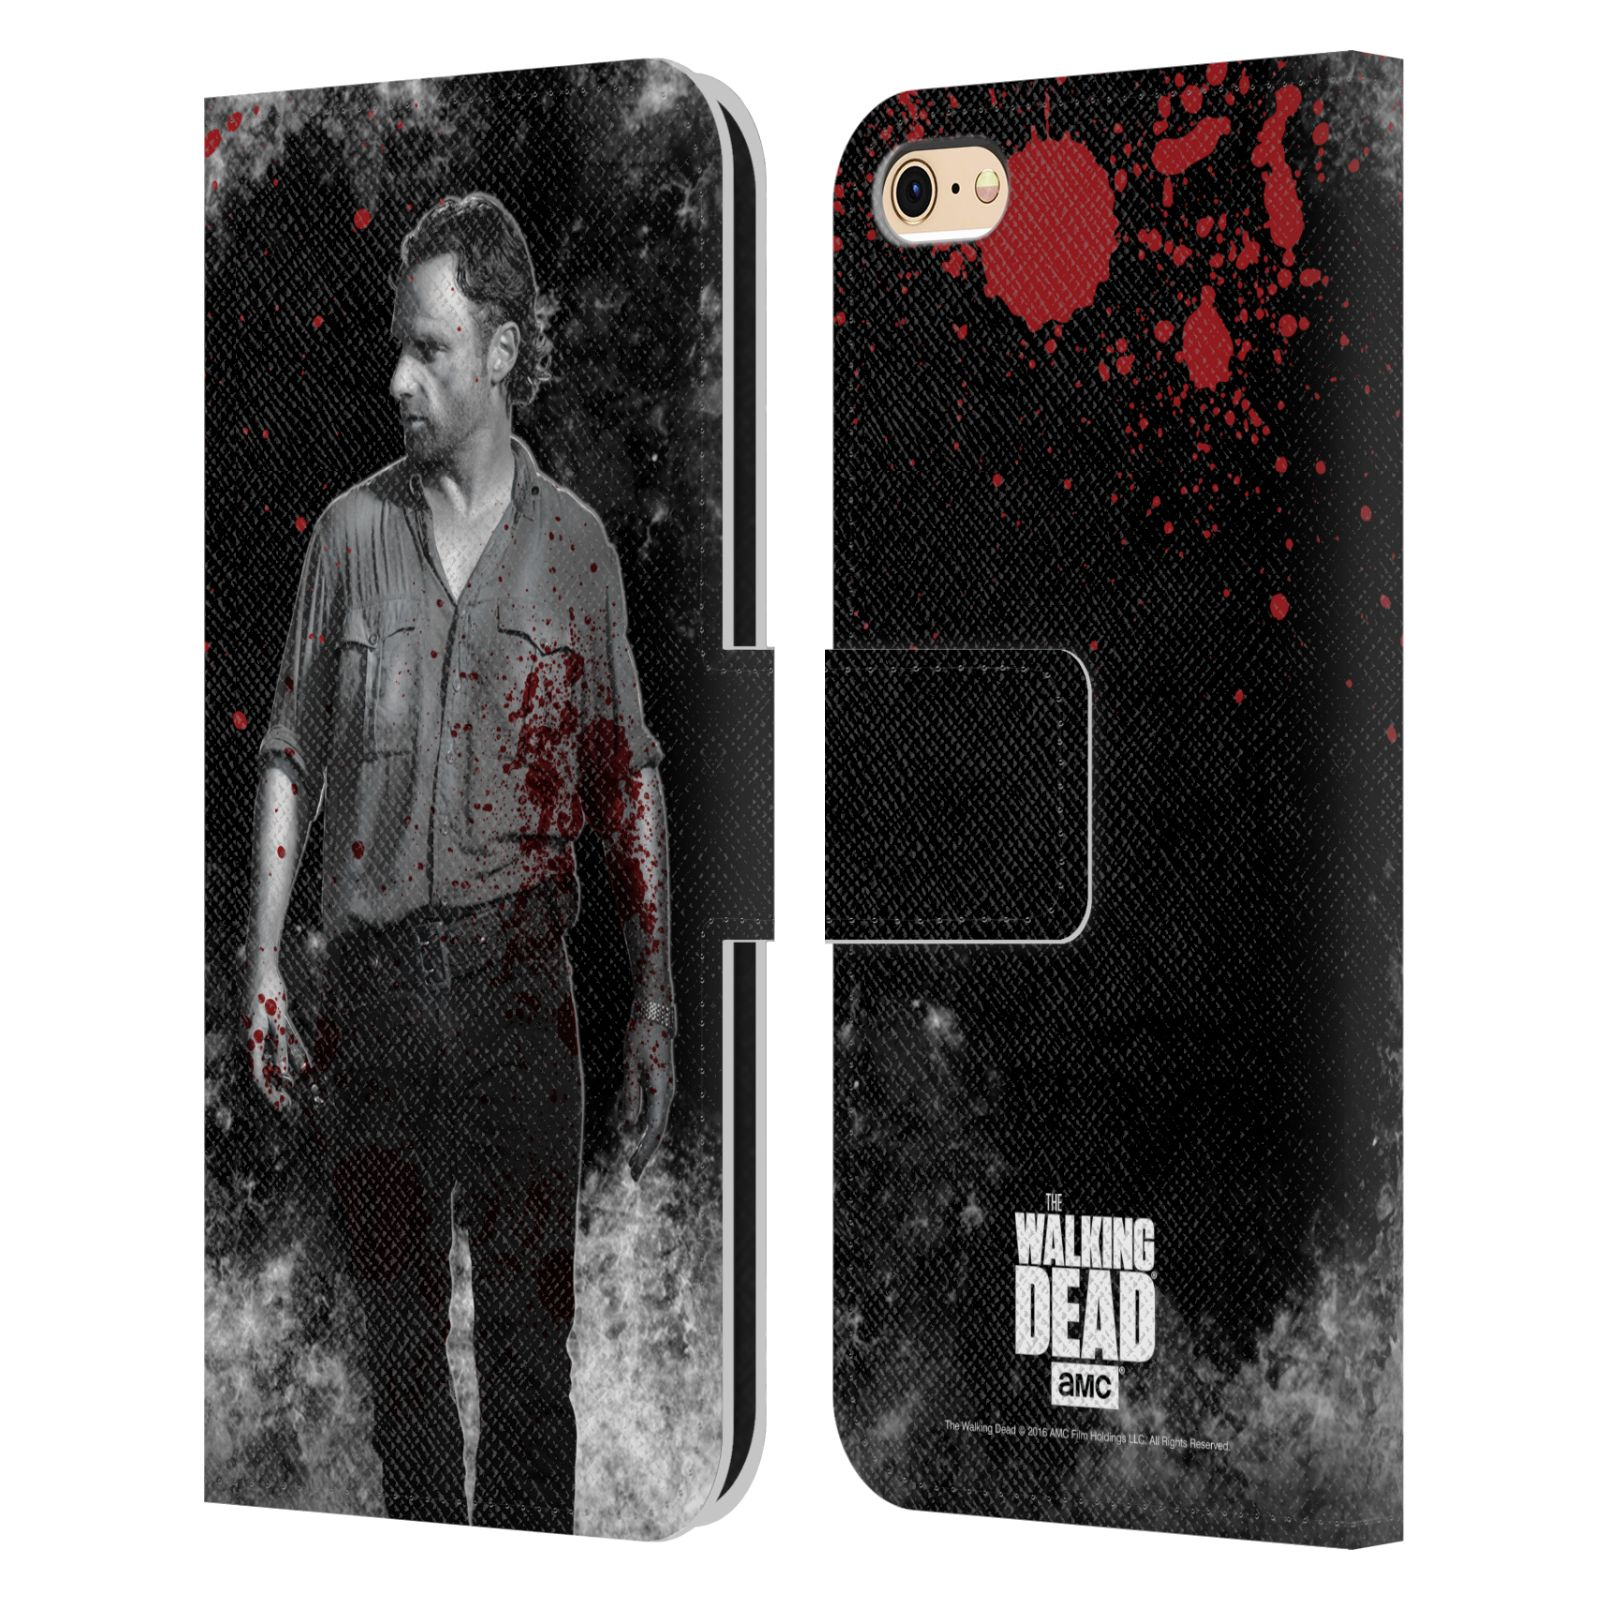 the walking dead collection on ebay